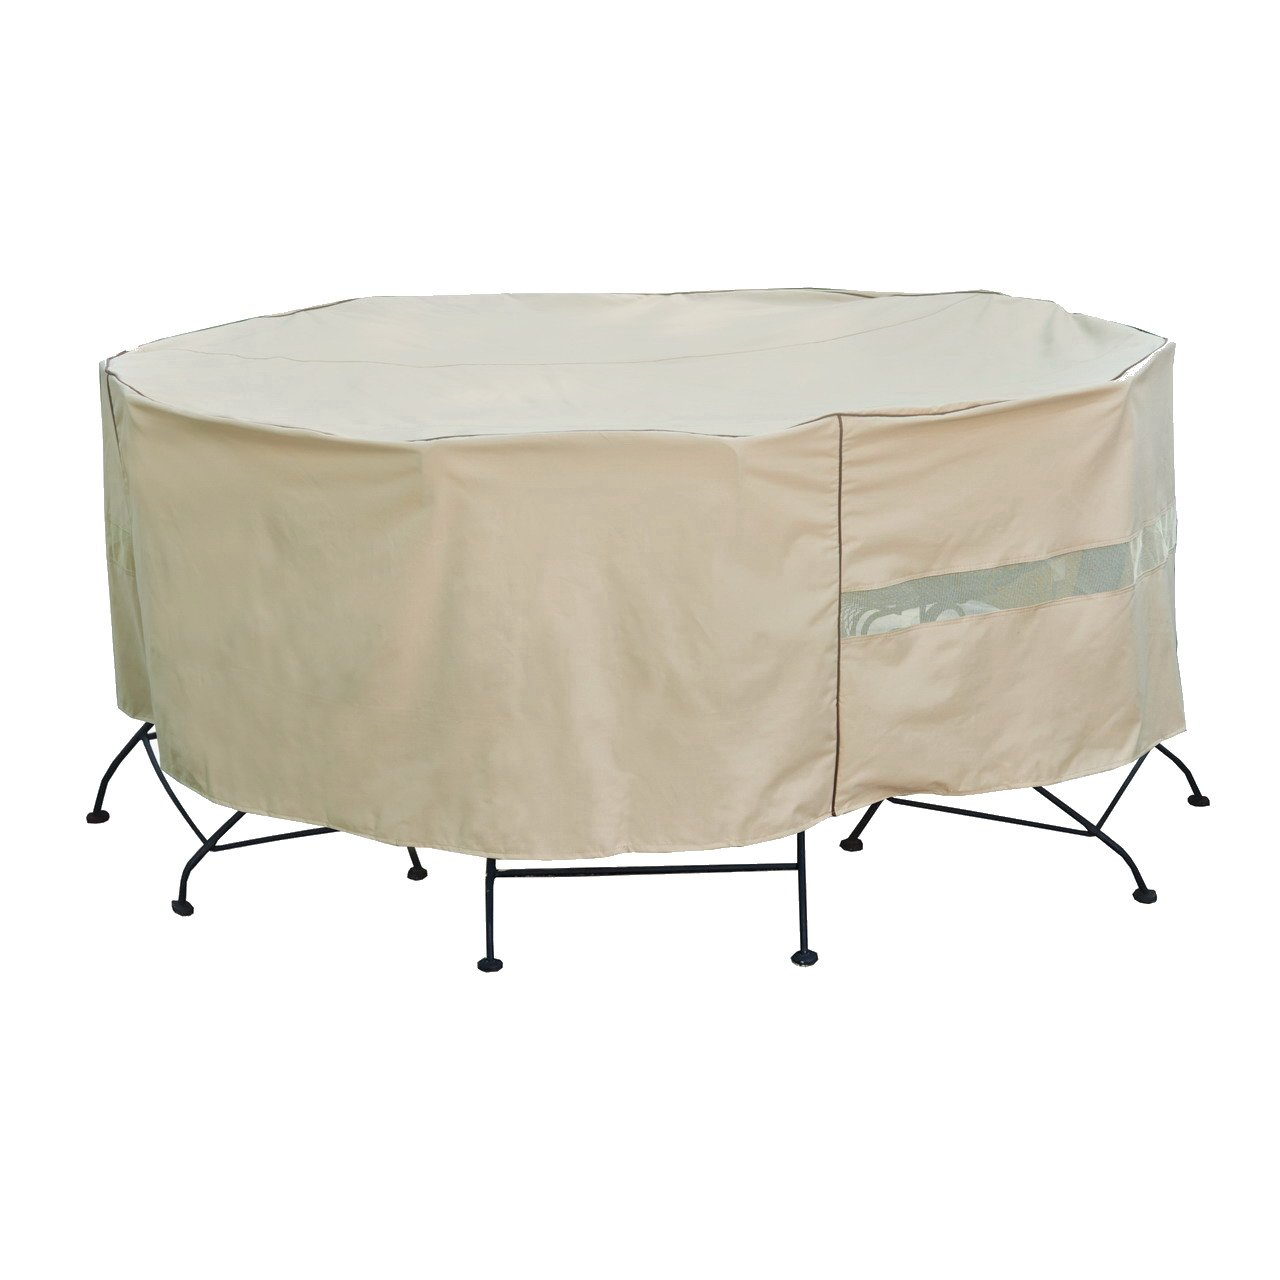 Seasons Select CVP01462 Round Table and Chair Set Cover, Large, Almond